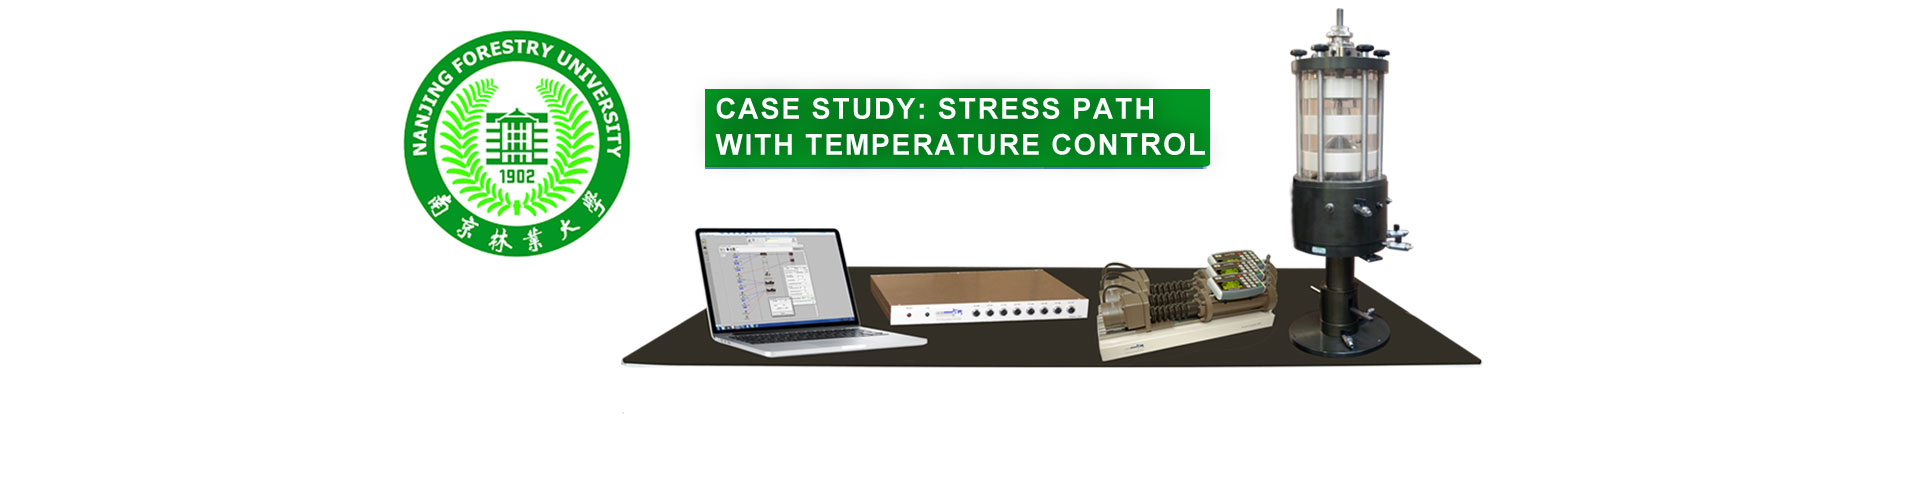 CASE STUDY: Temperature Controlled Stress Path Testing